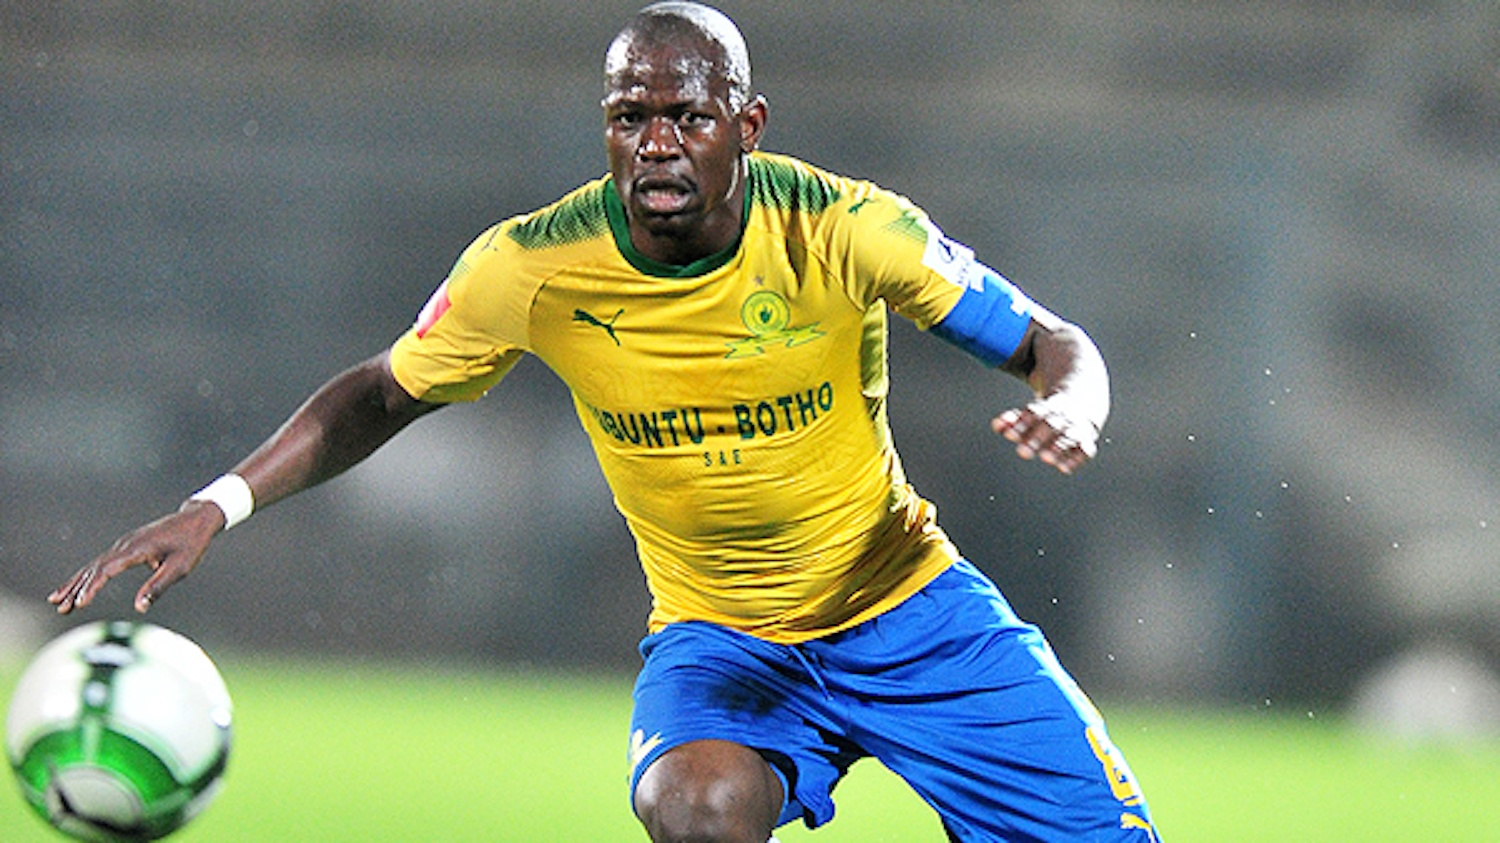 Mamelodi Sundowns captain Hlompho Kekana is confident that the club will bounce back from the slump that saw them lose three games in a row.